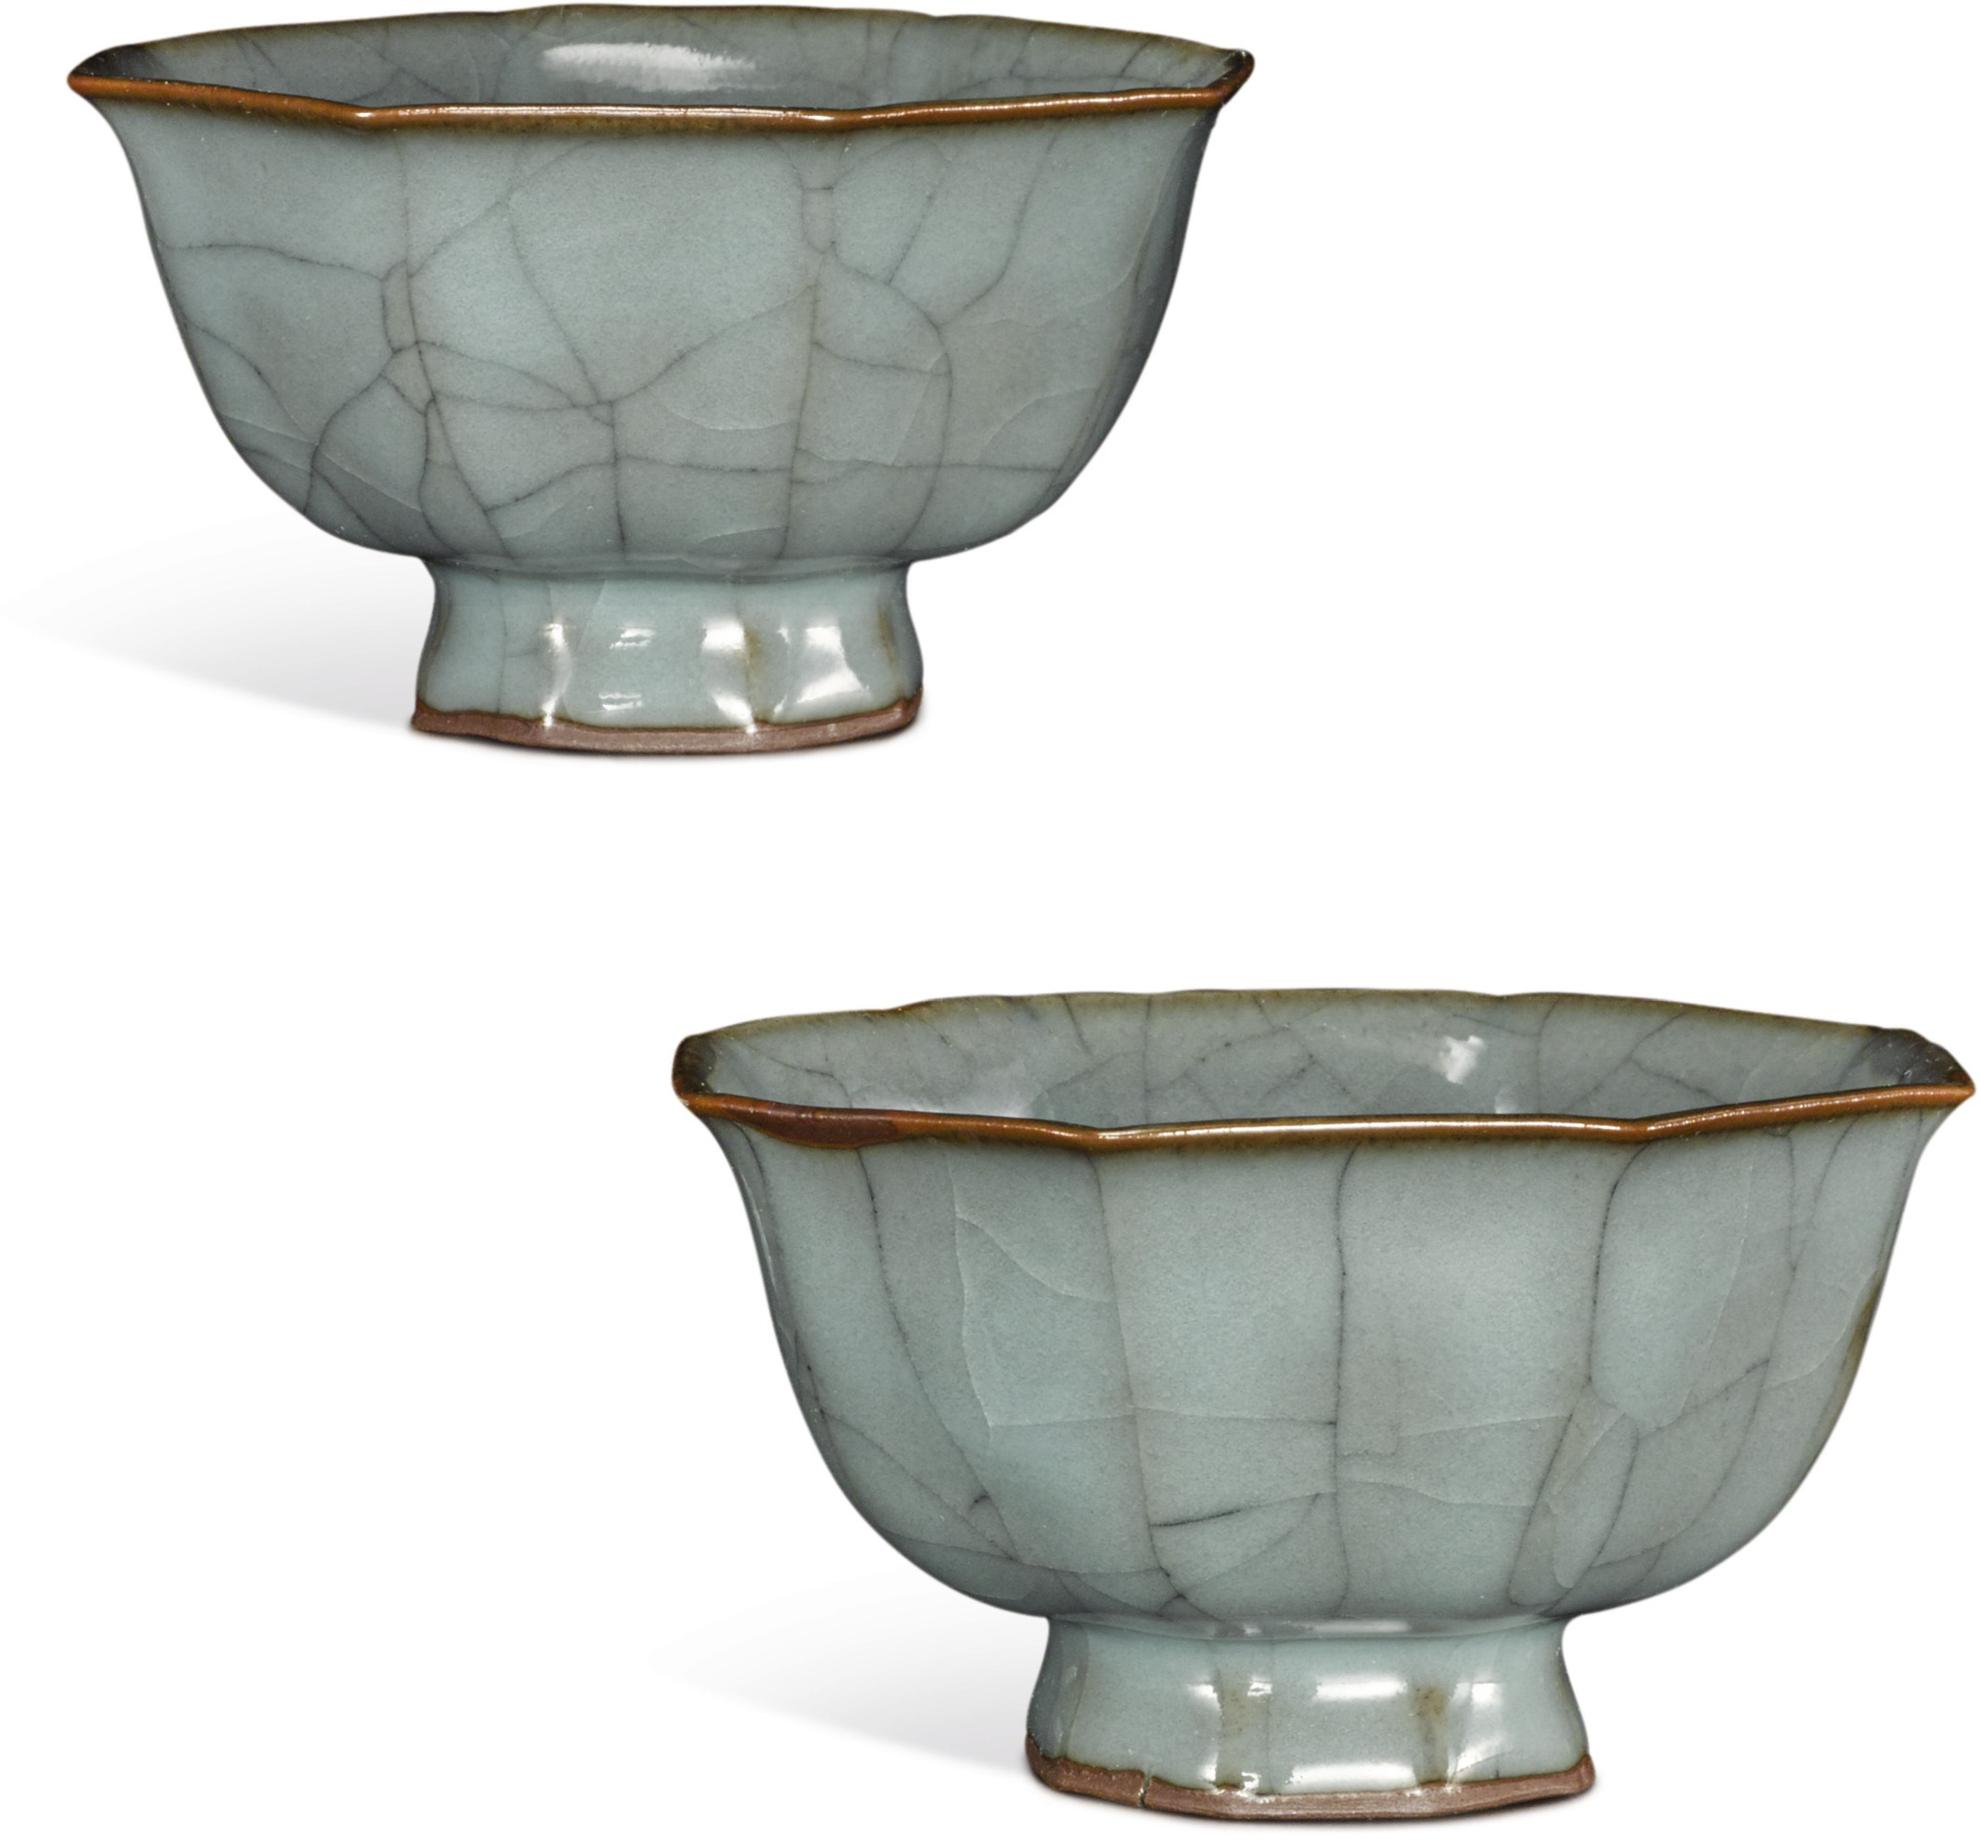 A Pair of Small 'Guan'-type Bowls, 19th/20th Century-